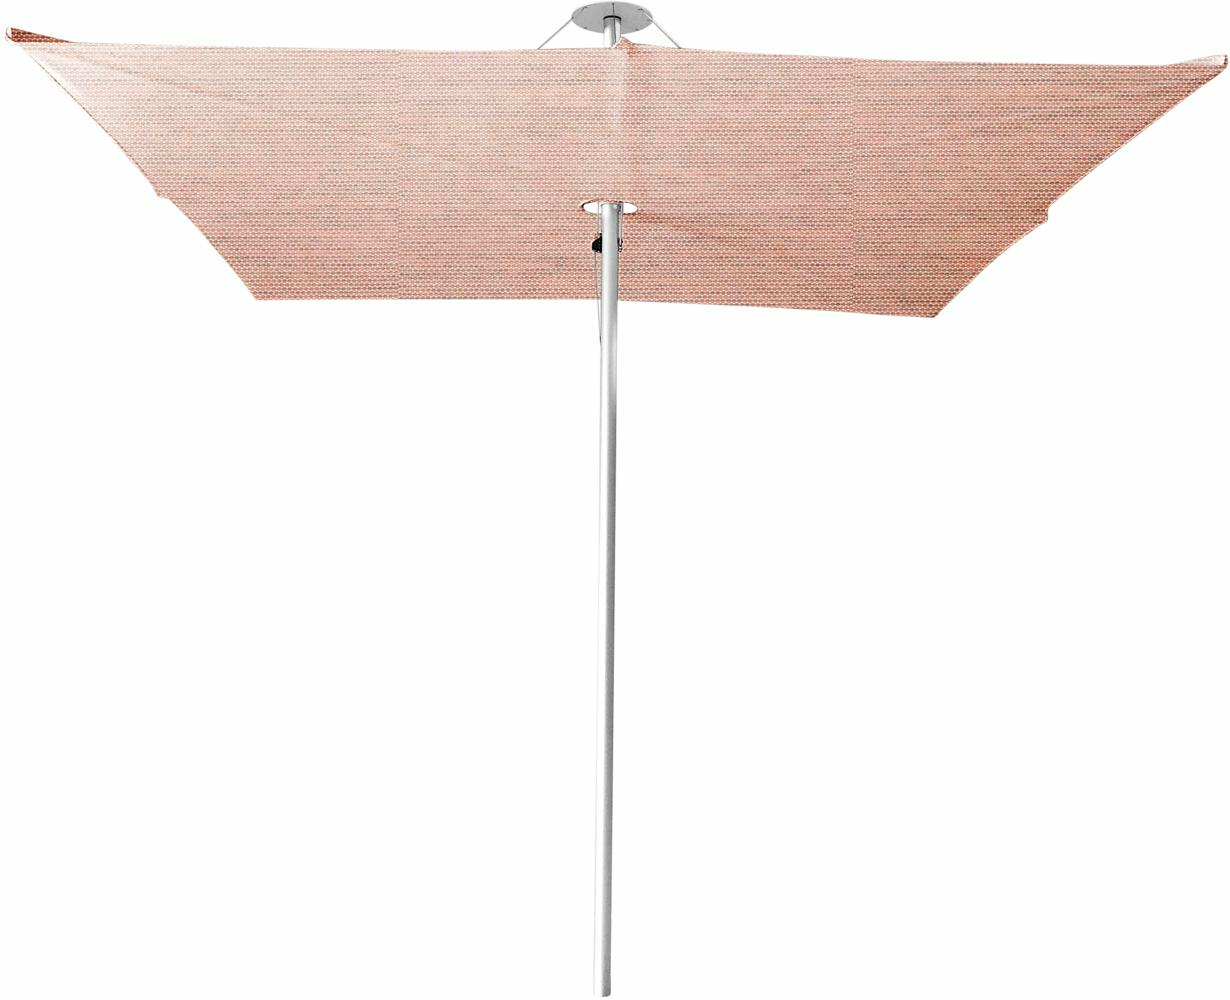 Infina canopy square 2,5 m in colour Blush